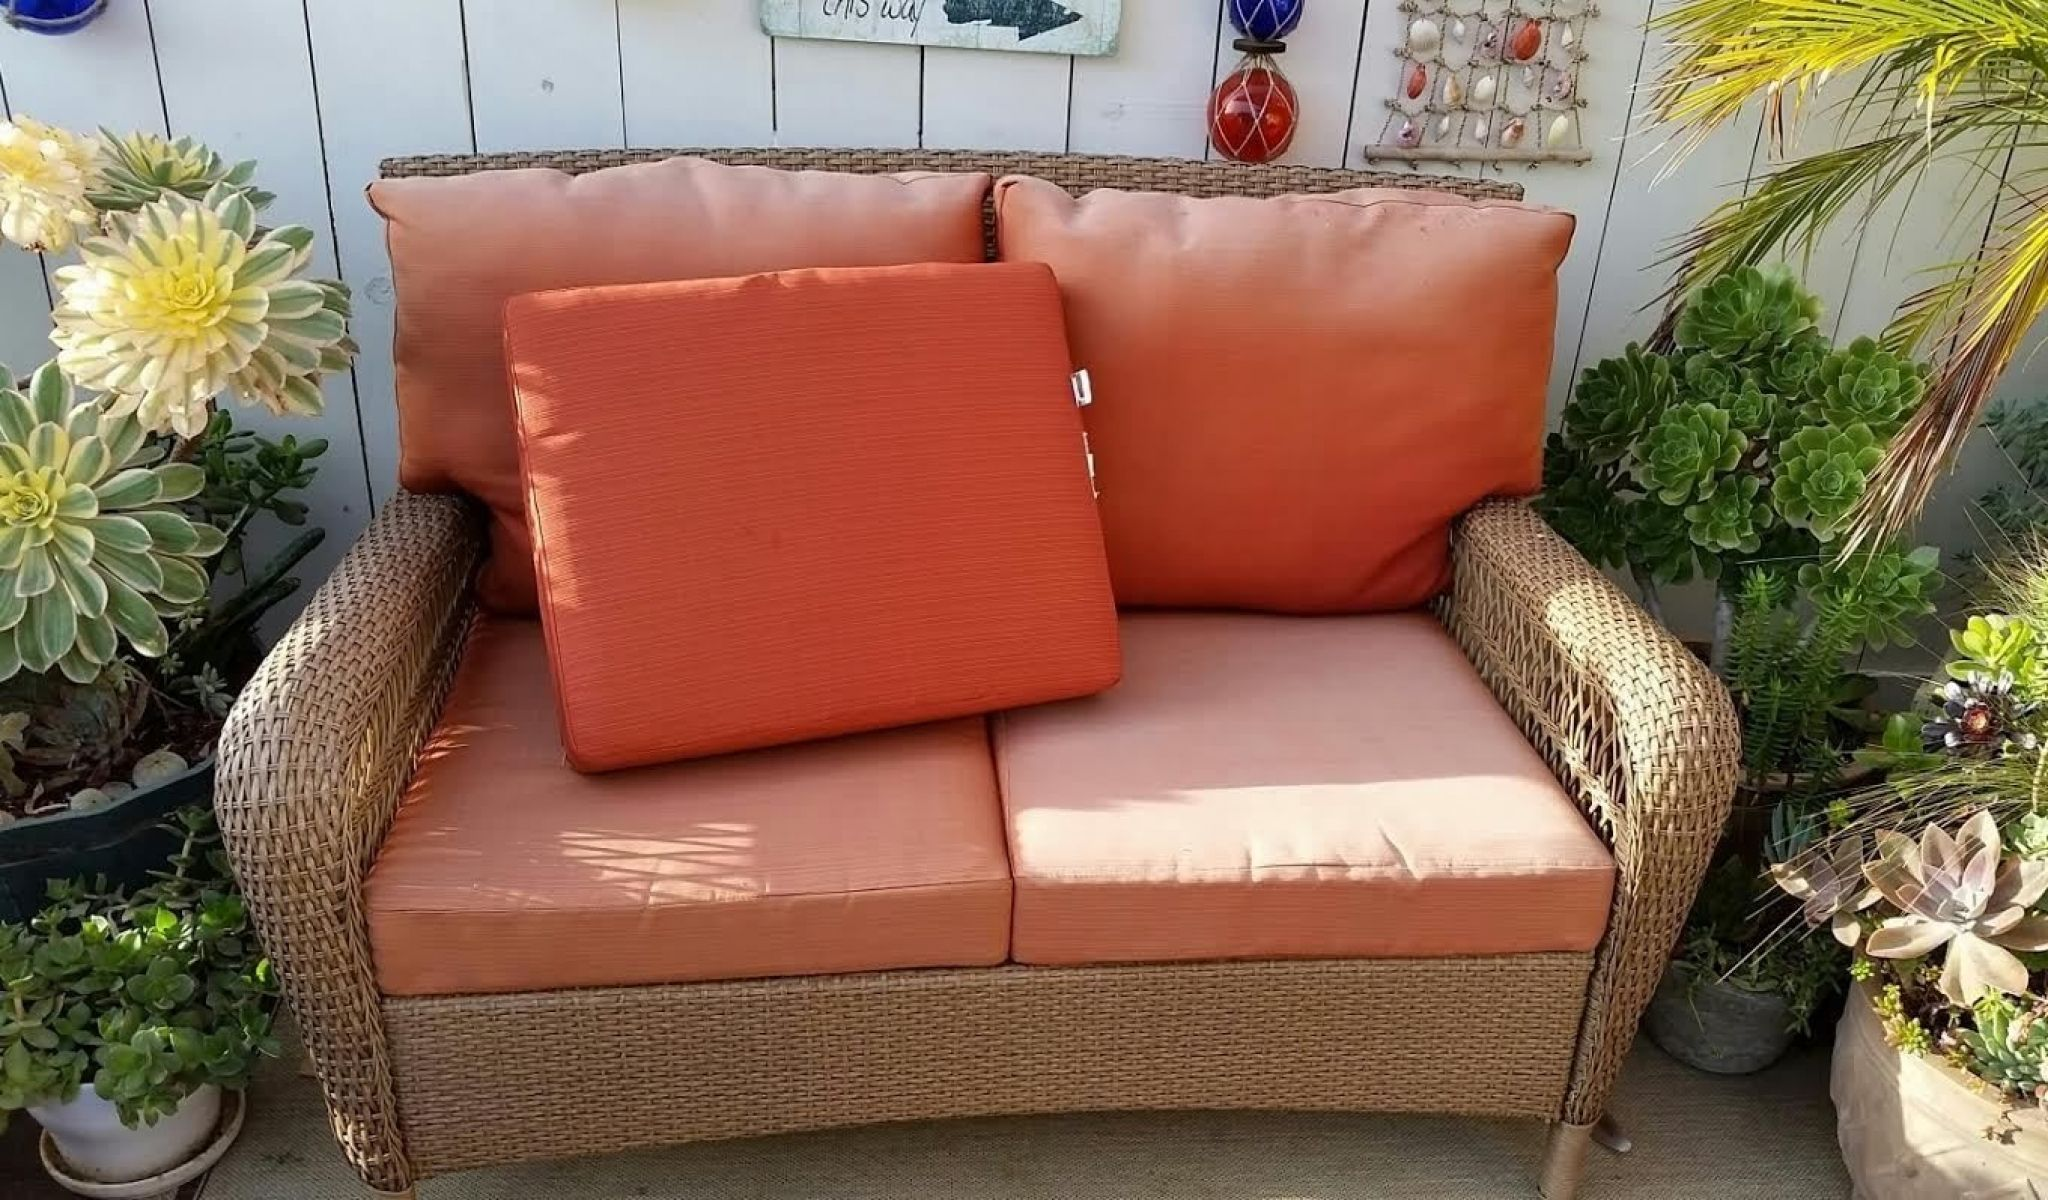 home depot outdoor furniture covers. Home Depot Outdoor Furniture Covers - Interior Paint Color Schemes Check More At Http:/ T